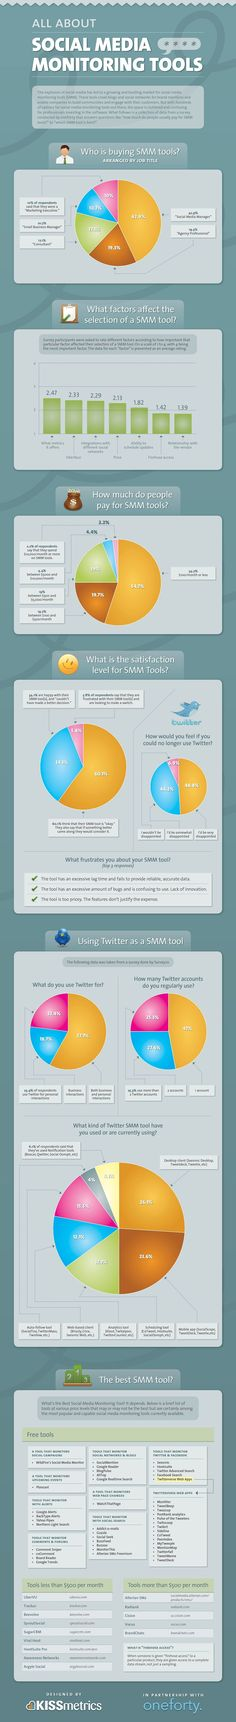 Definitive infographic on social media monitoring tools.